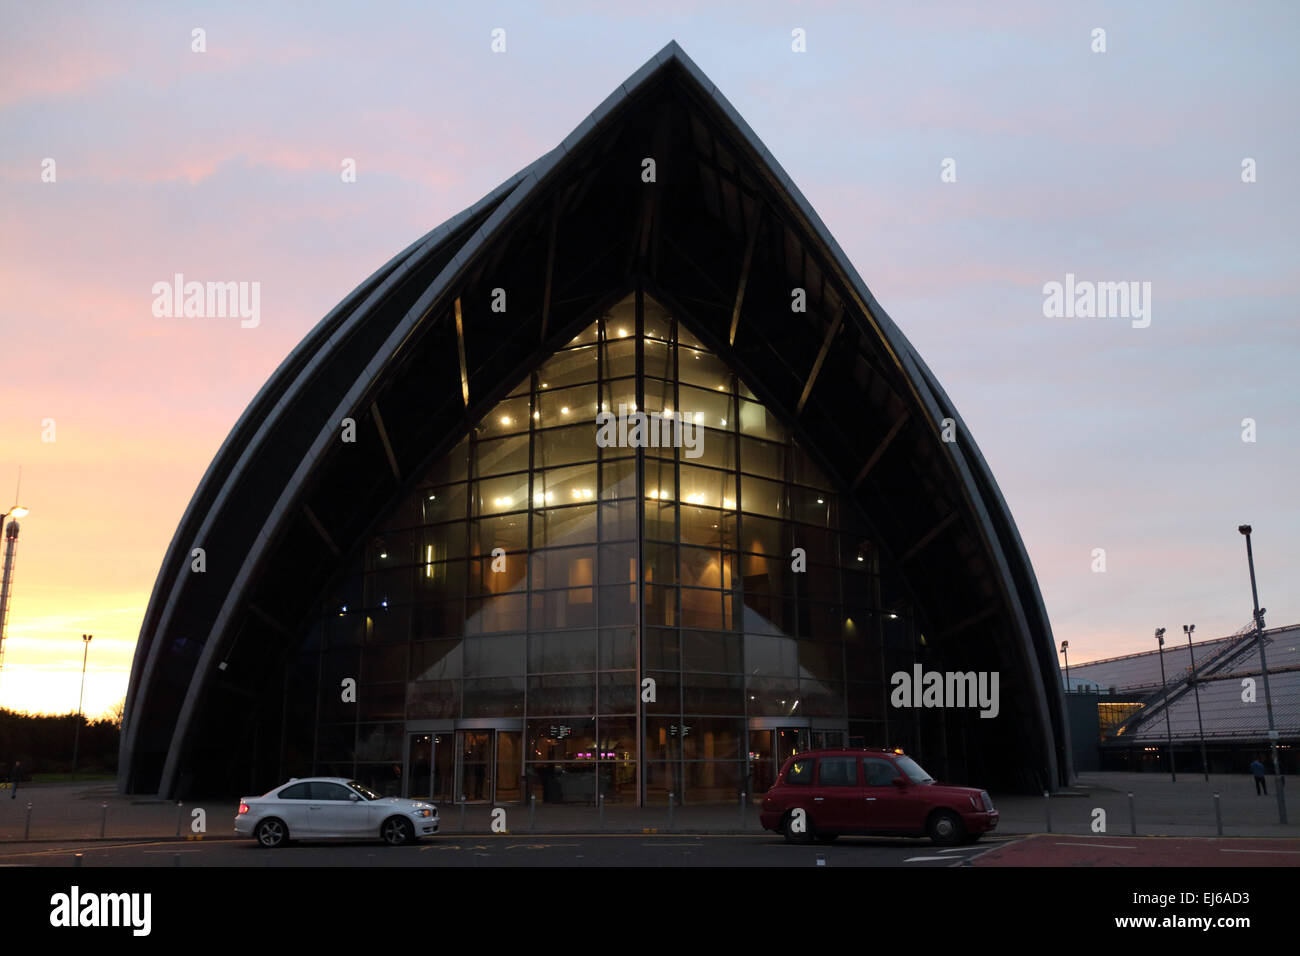 clyde auditorium at the secc scottish exhibition and conference centre at dusk Glasgow Scotland uk - Stock Image